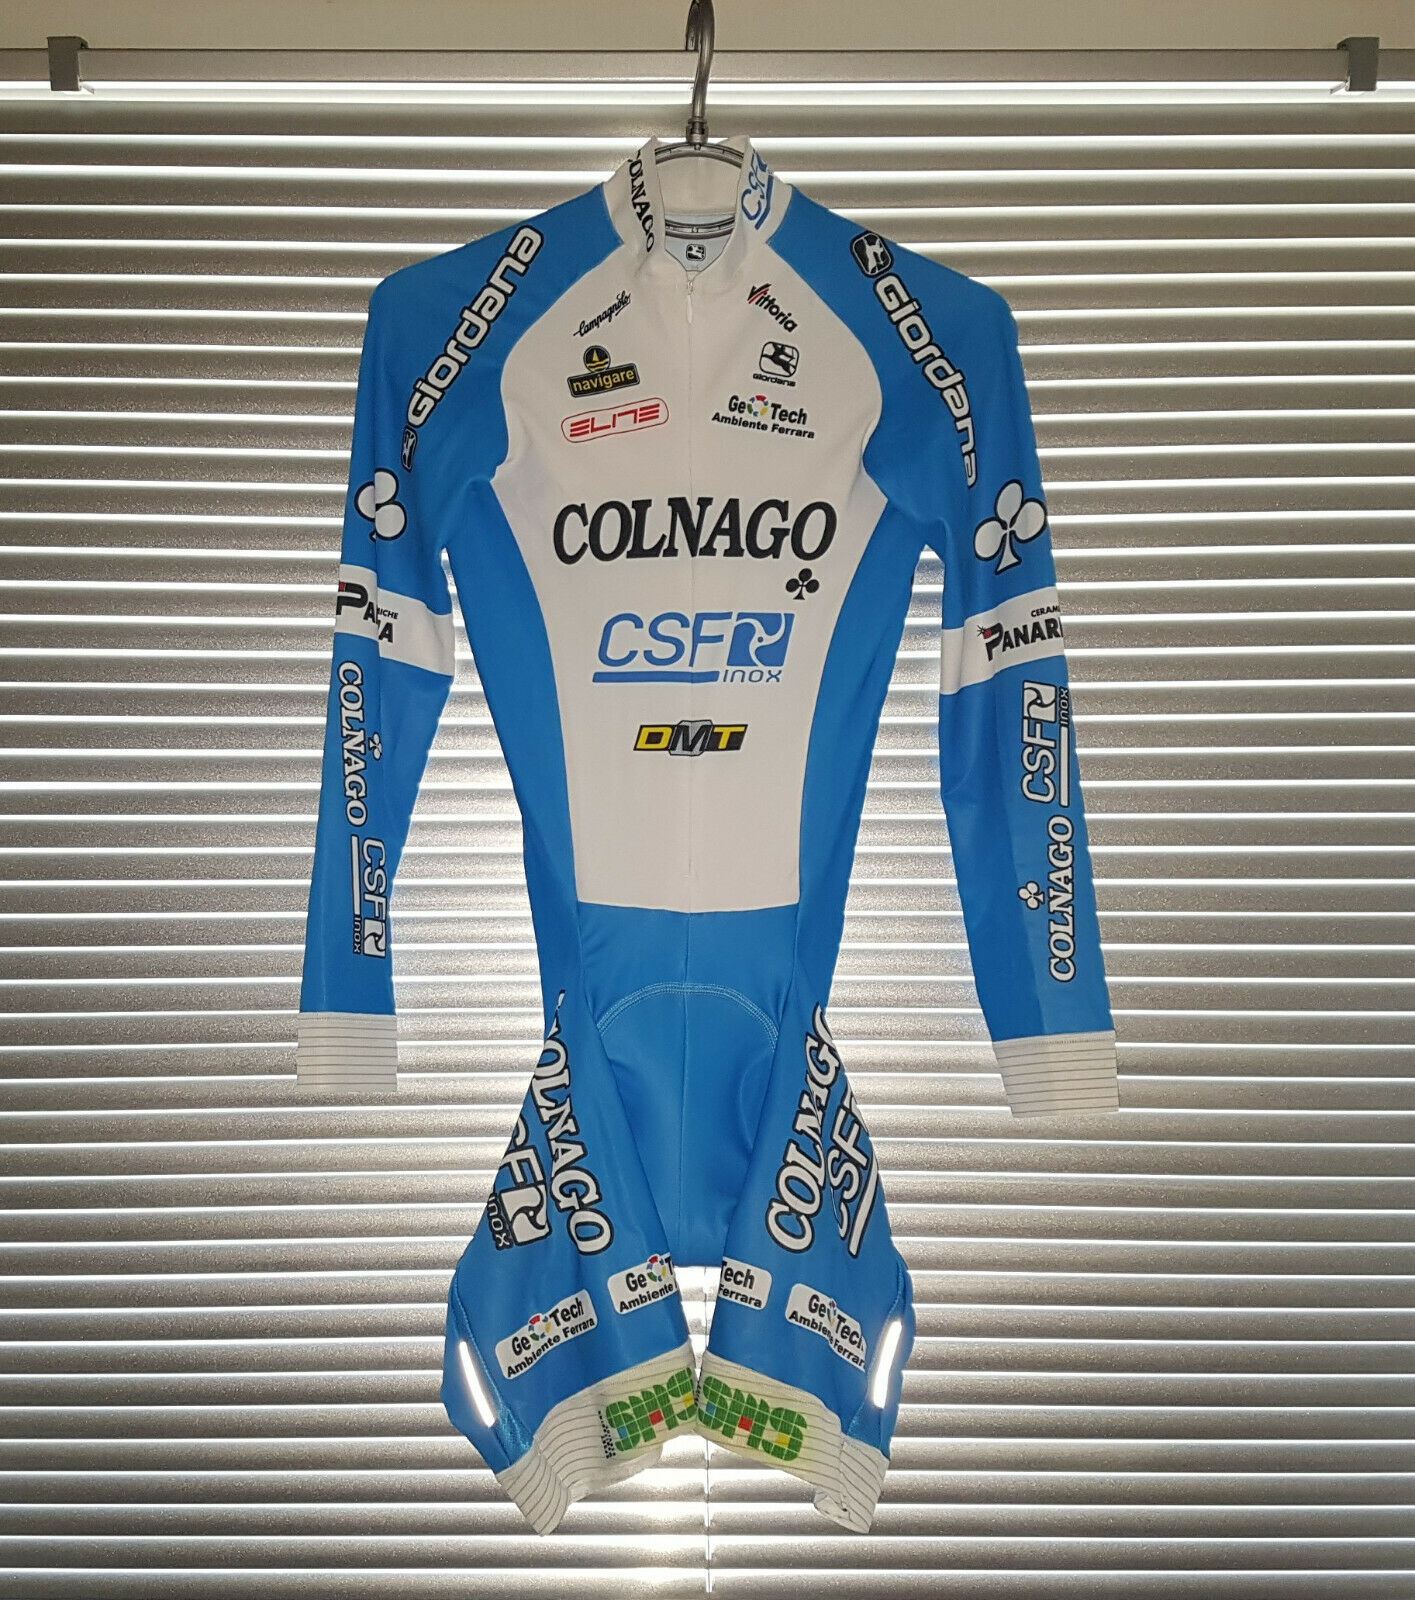 Rare Colnago CSF Panaria Issued Cycling Suit Speed Race Suit Giordana Men Size M